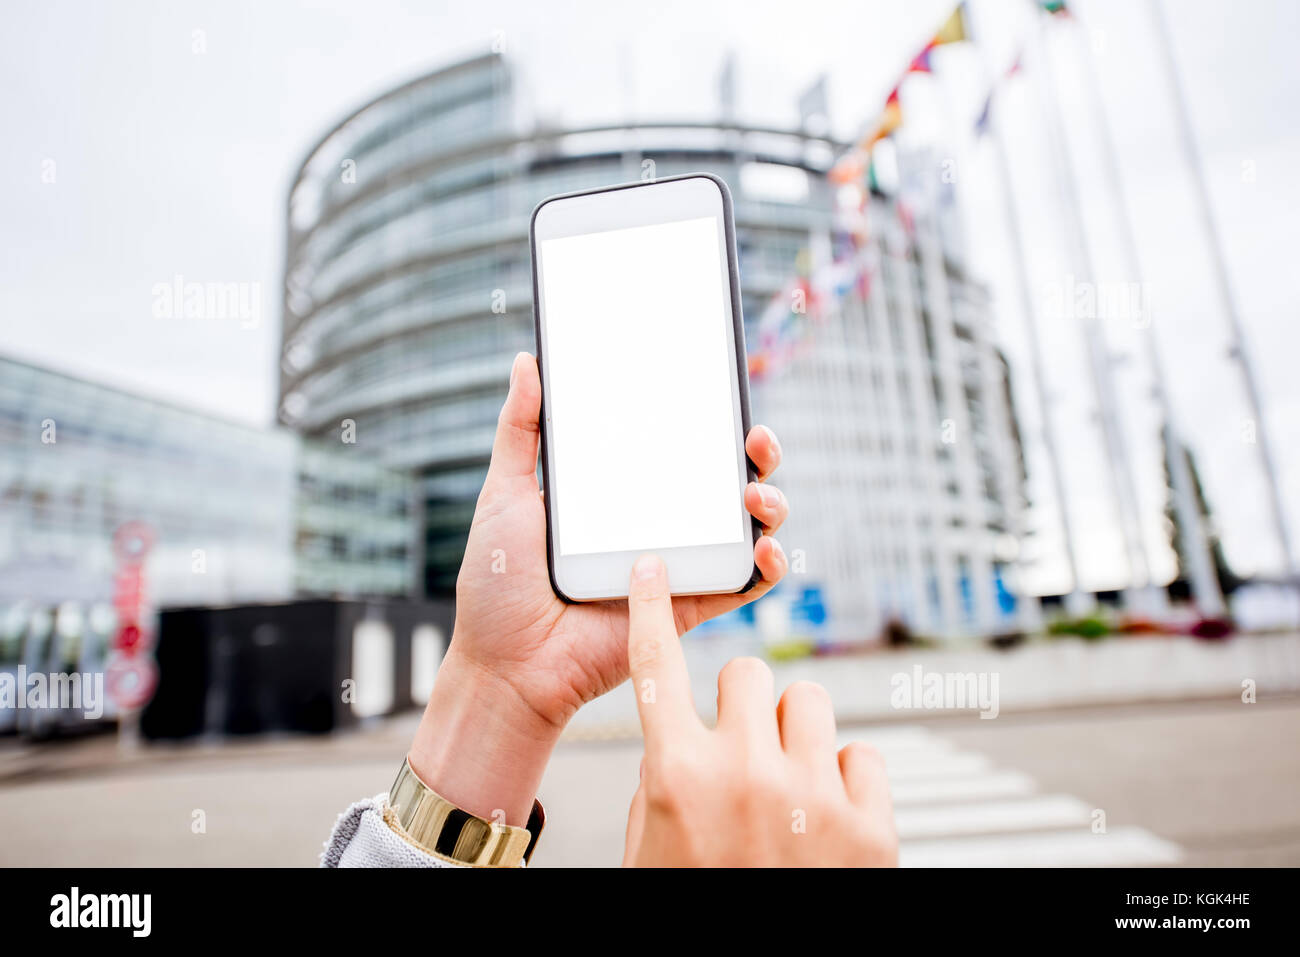 Holding phone on the European parliament building background - Stock Image